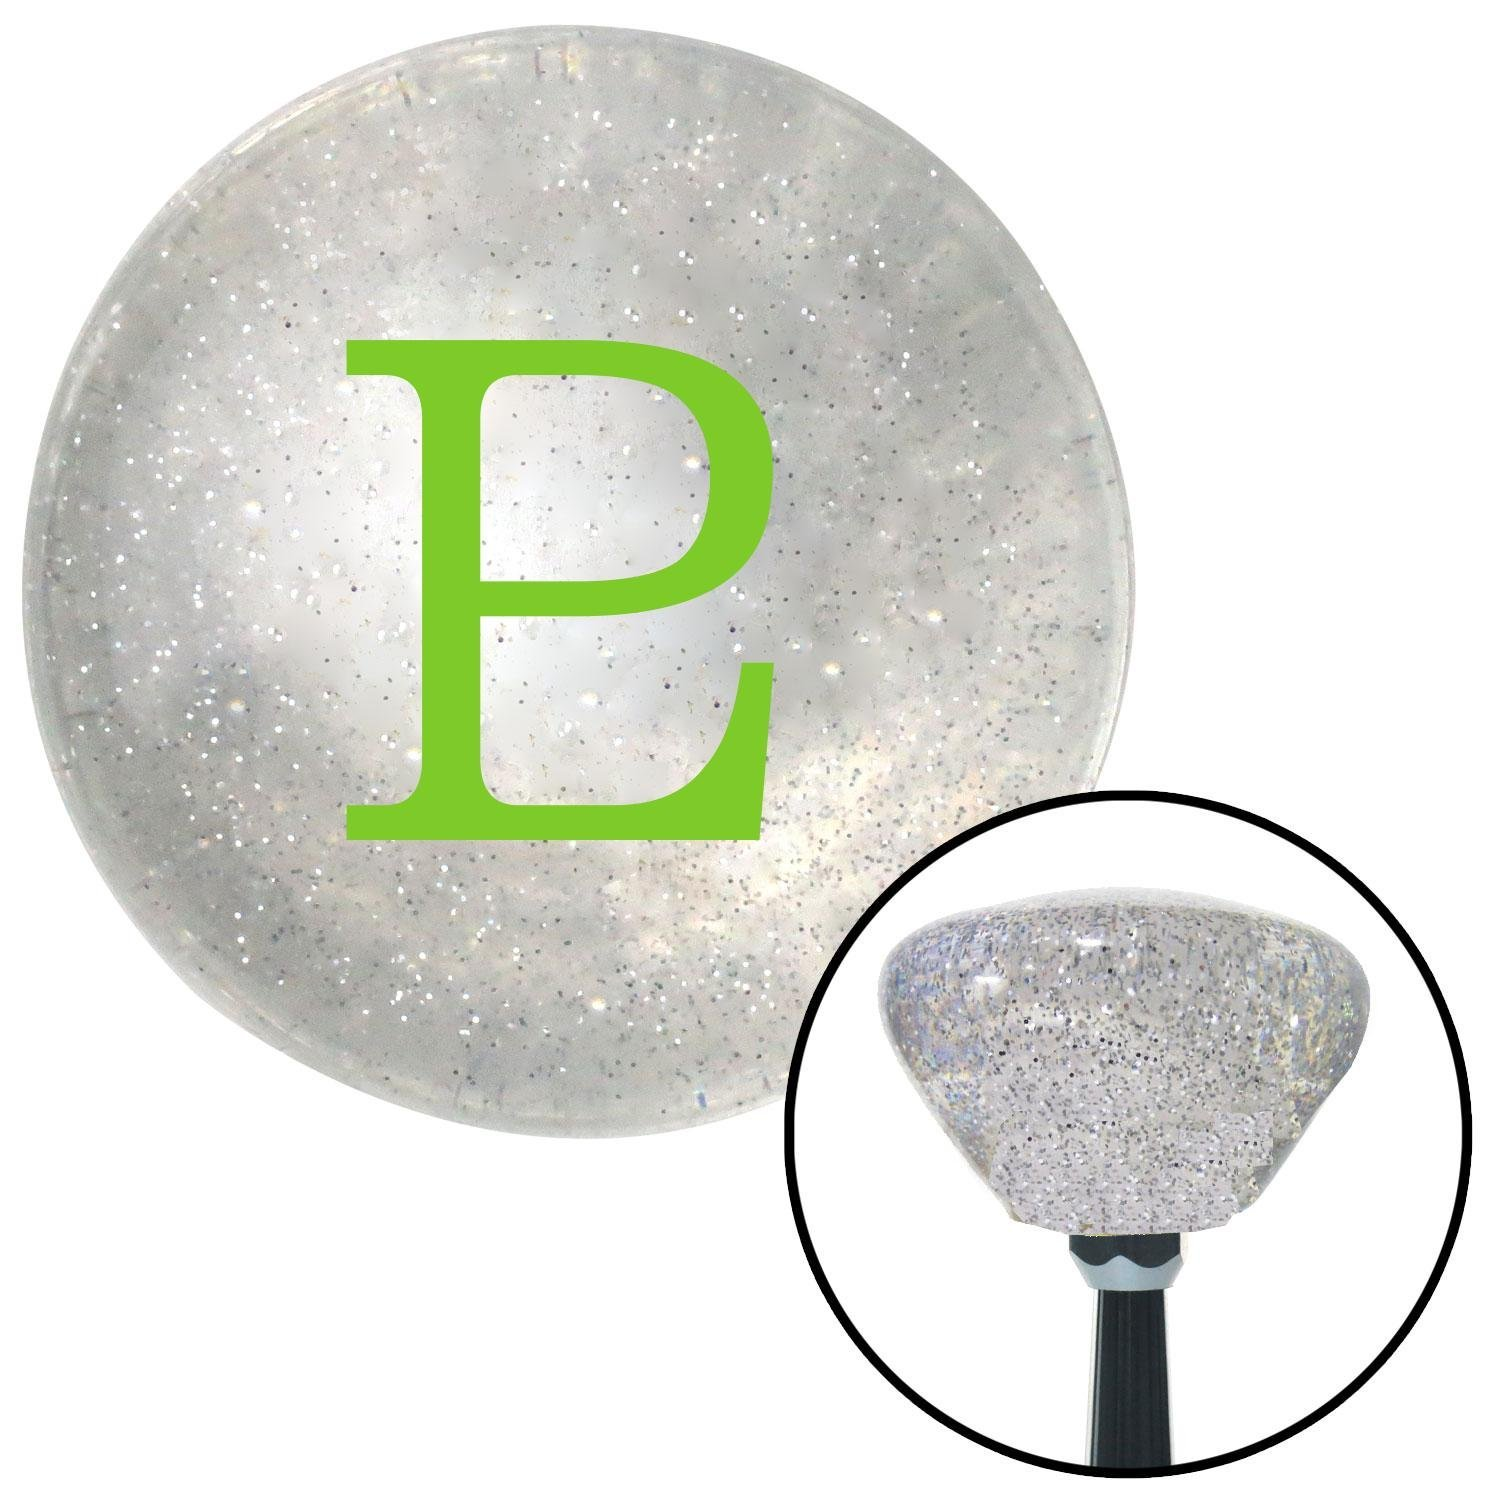 Green Pluto American Shifter 163740 Clear Retro Metal Flake Shift Knob with M16 x 1.5 Insert